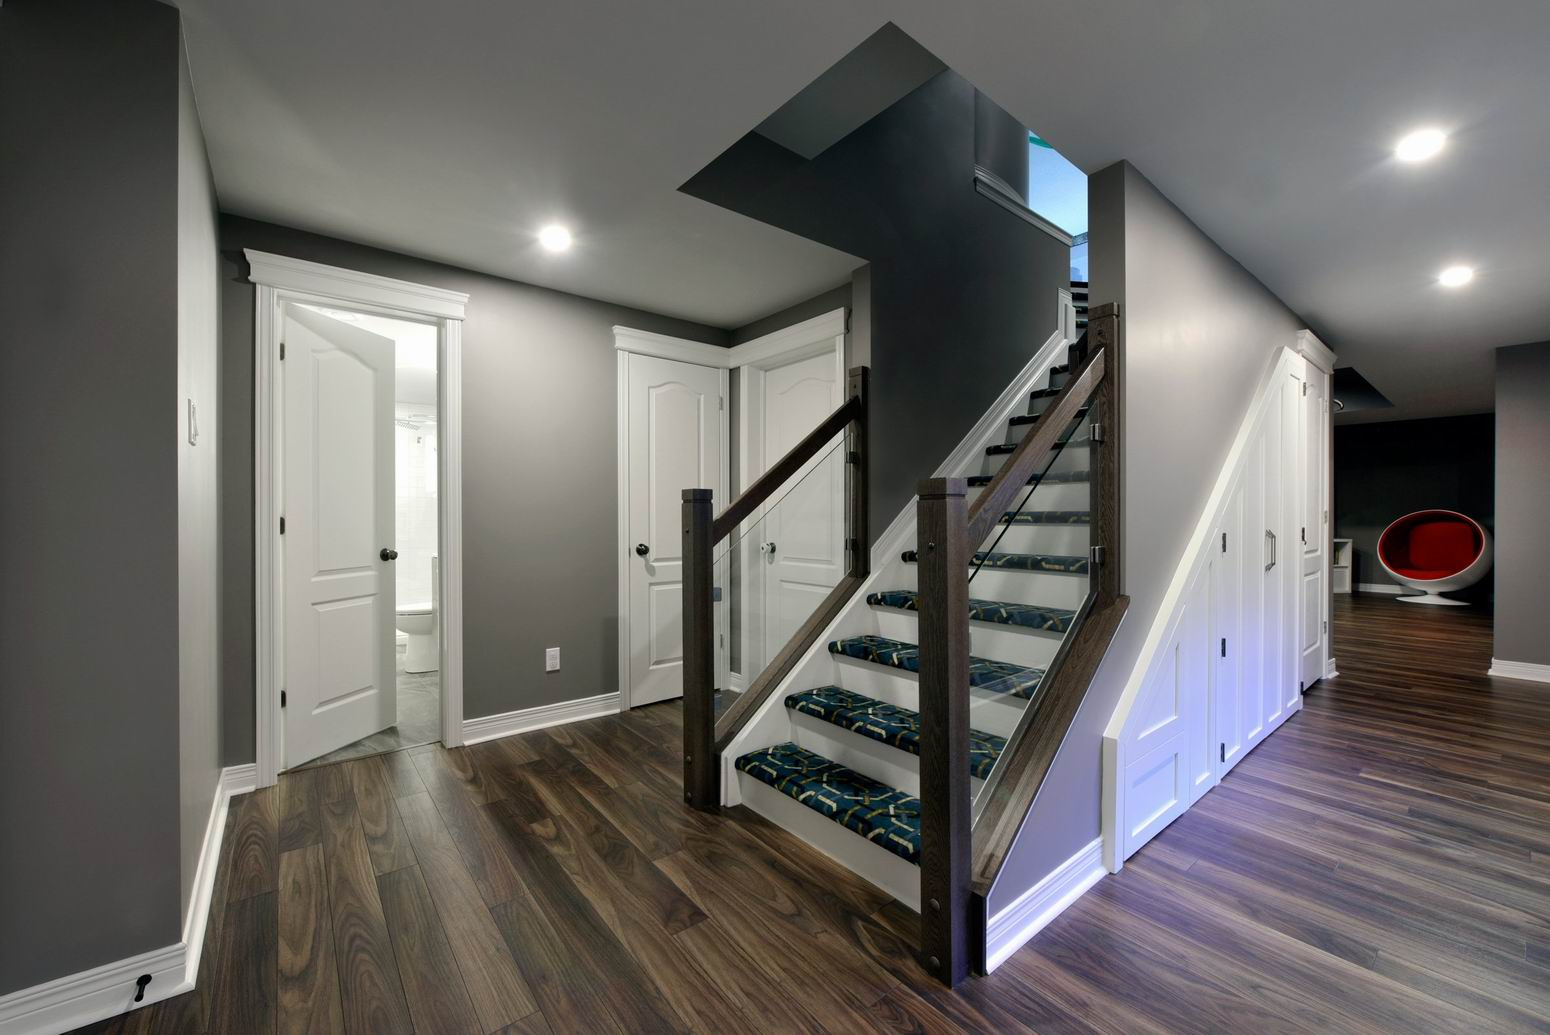 Basement Stair Trim: Meet The Finalist: A Turtle-y Awesome Basement Renovation